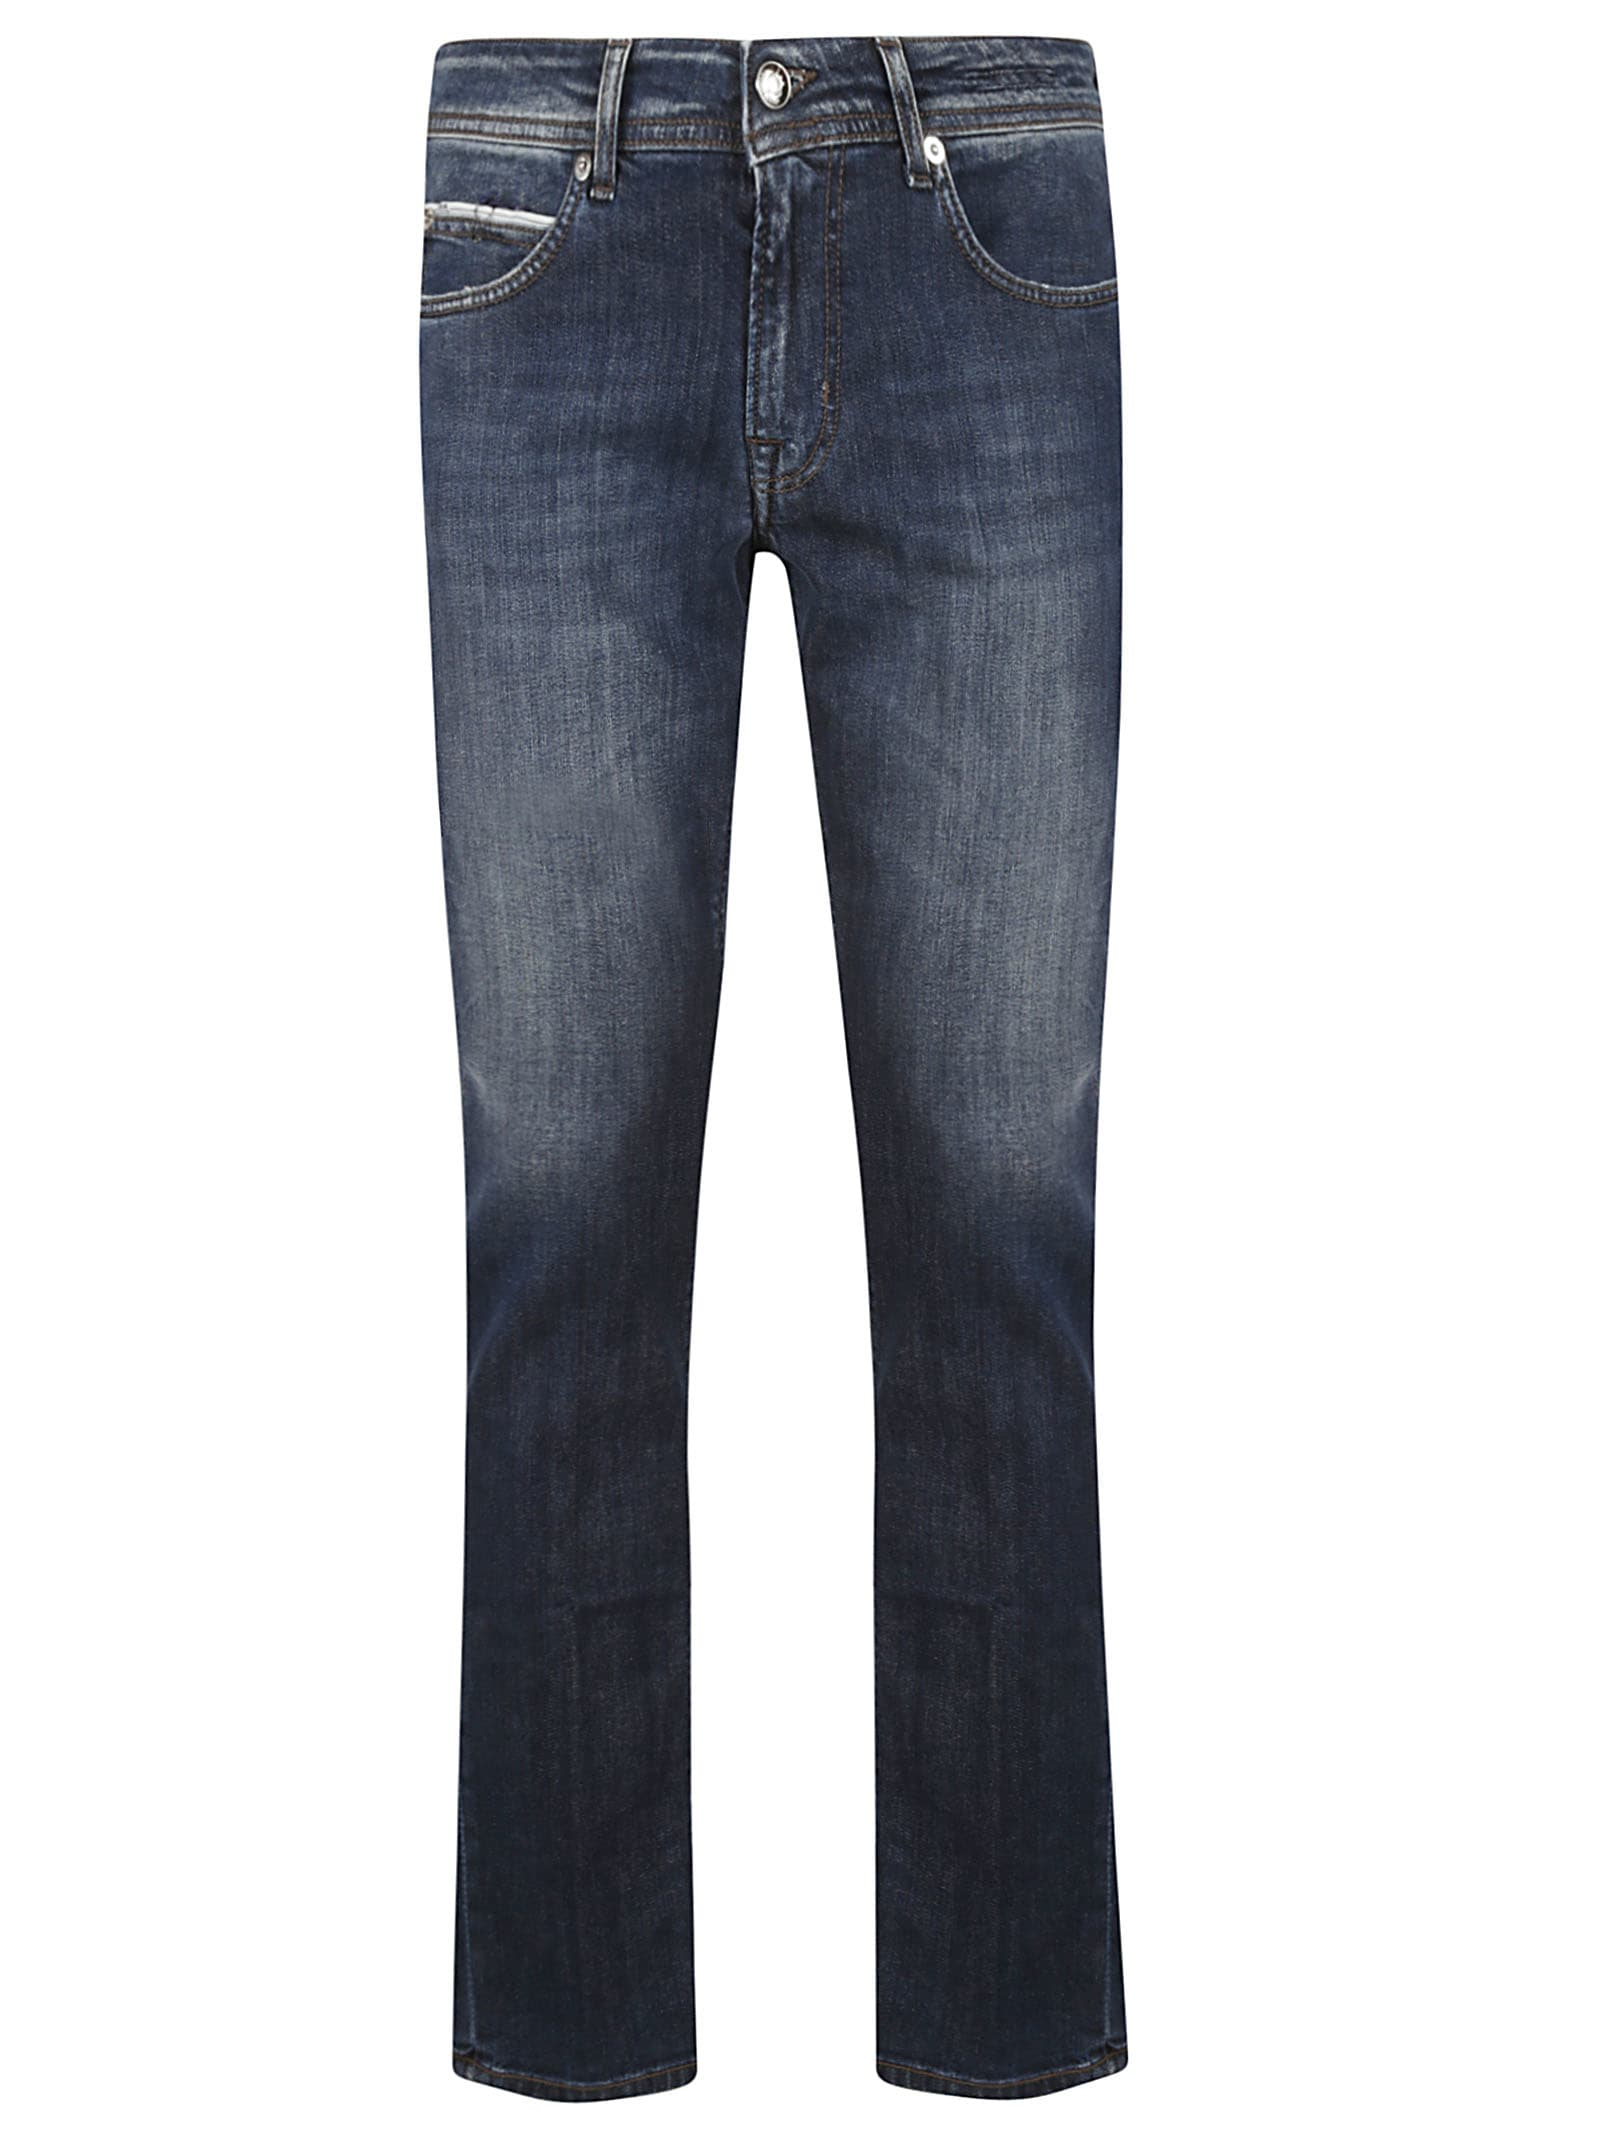 1949 Stone Washed Jeans